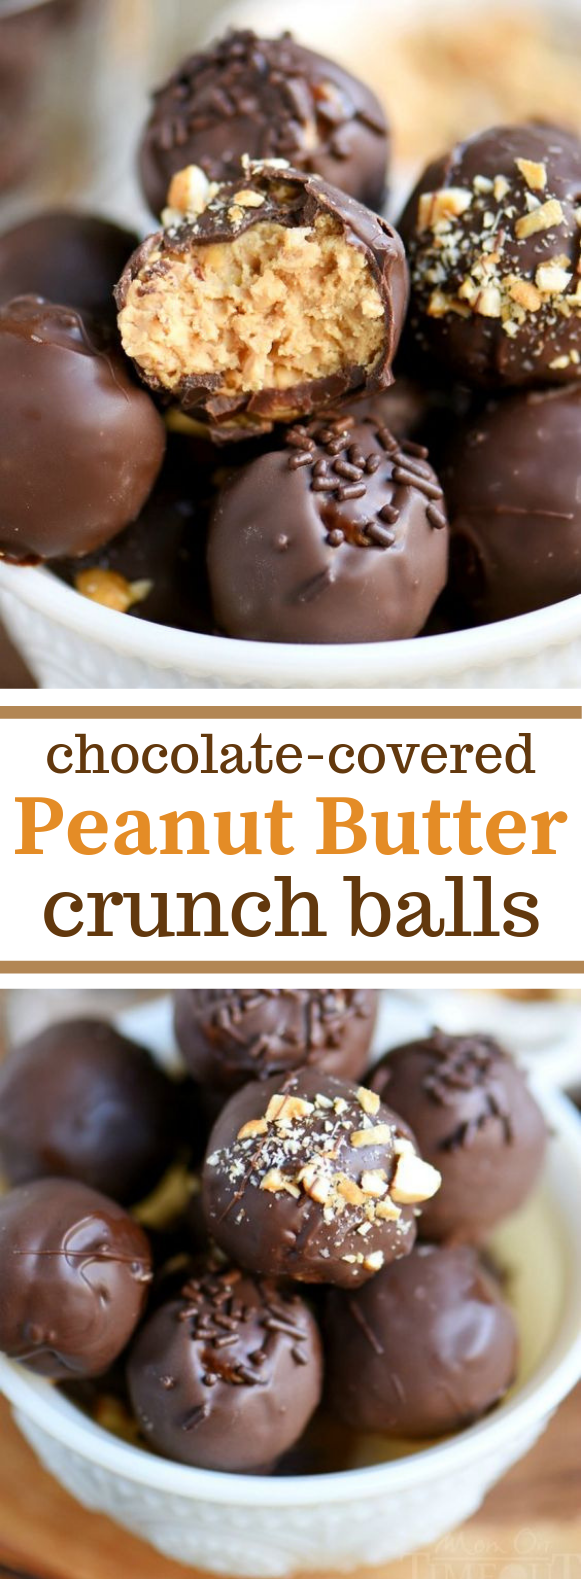 CHOCOLATE COVERED PEANUT BUTTER CRUNCH BALLS CHOCOLATE COVERED PEANUT BUTTER CRUNCH BALLS